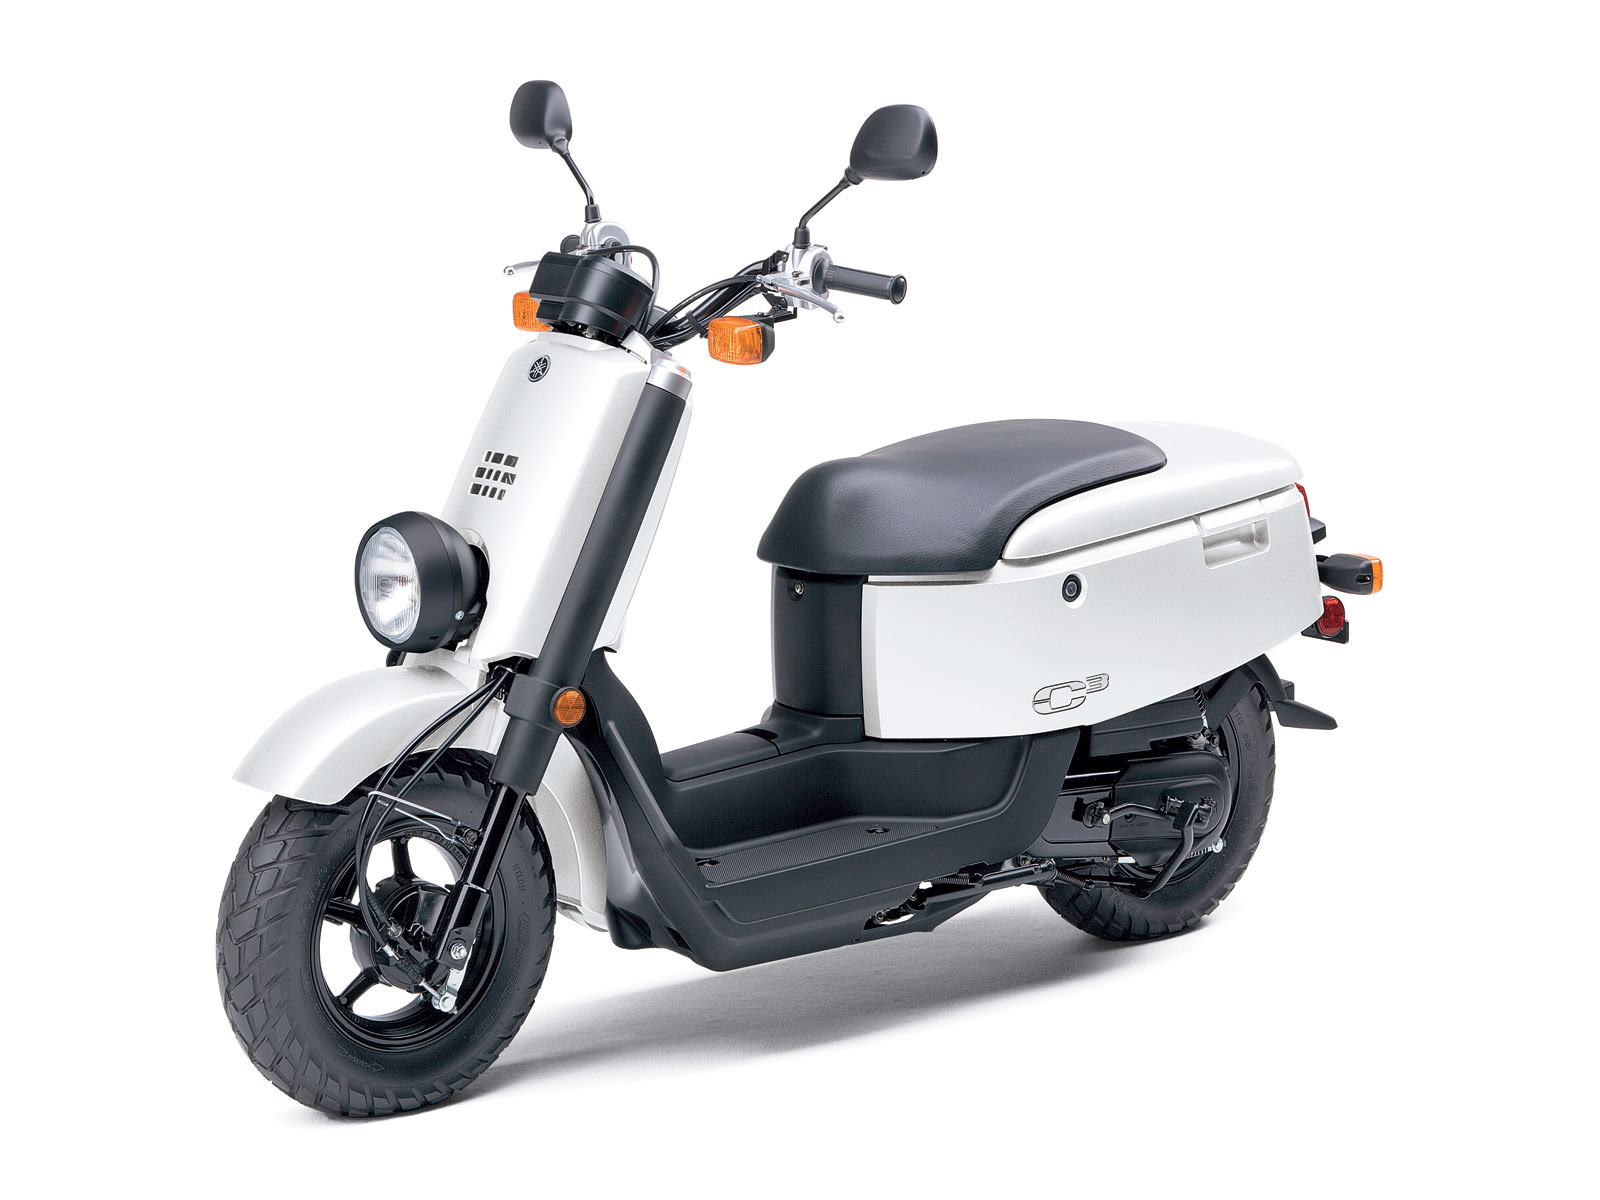 Scooter wallpapers Specifications review features benefits 1600x1200